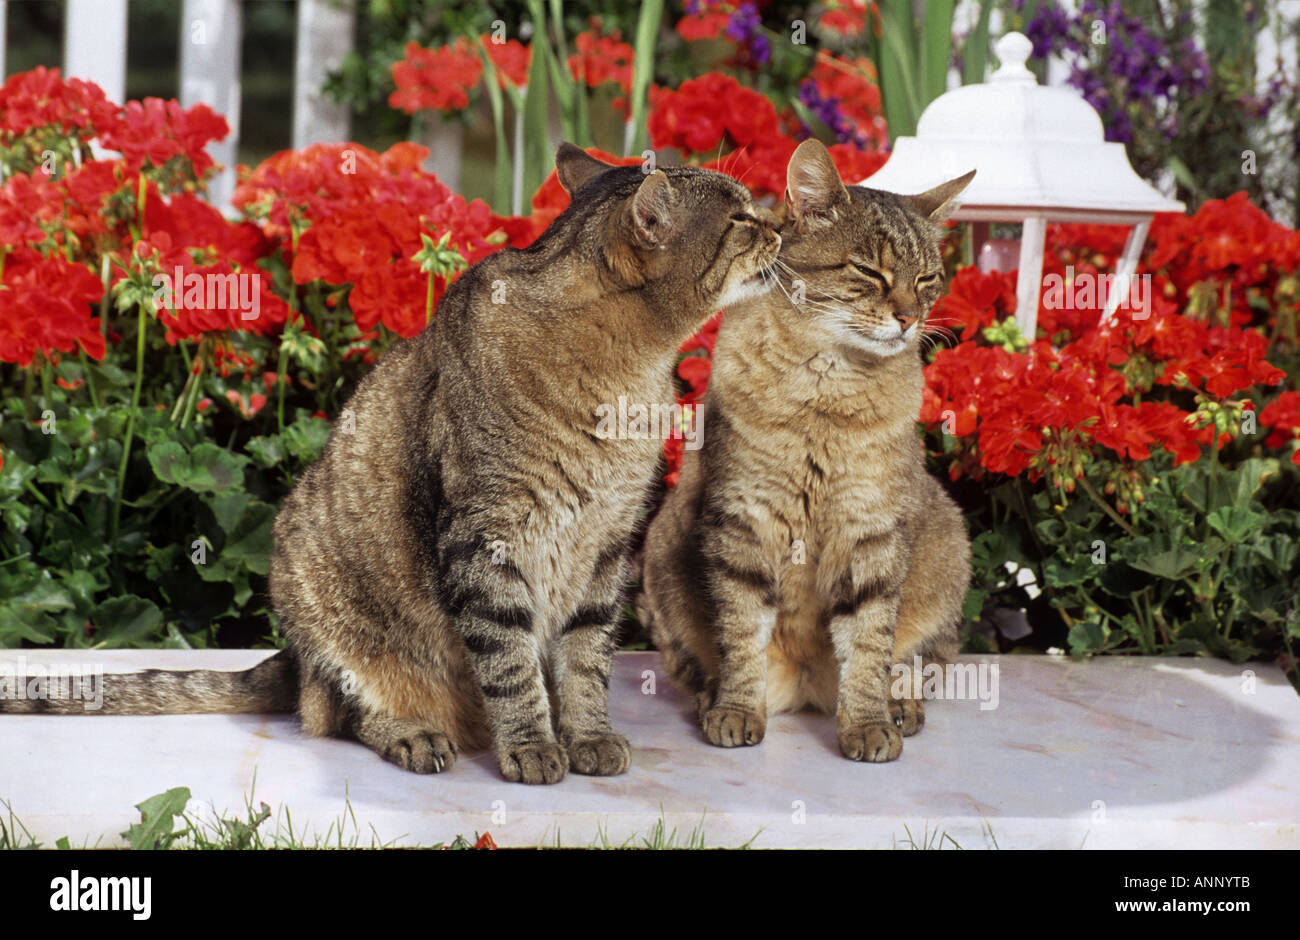 two tabby domestic cats - sitting in front of flowers - smooching - Stock Image